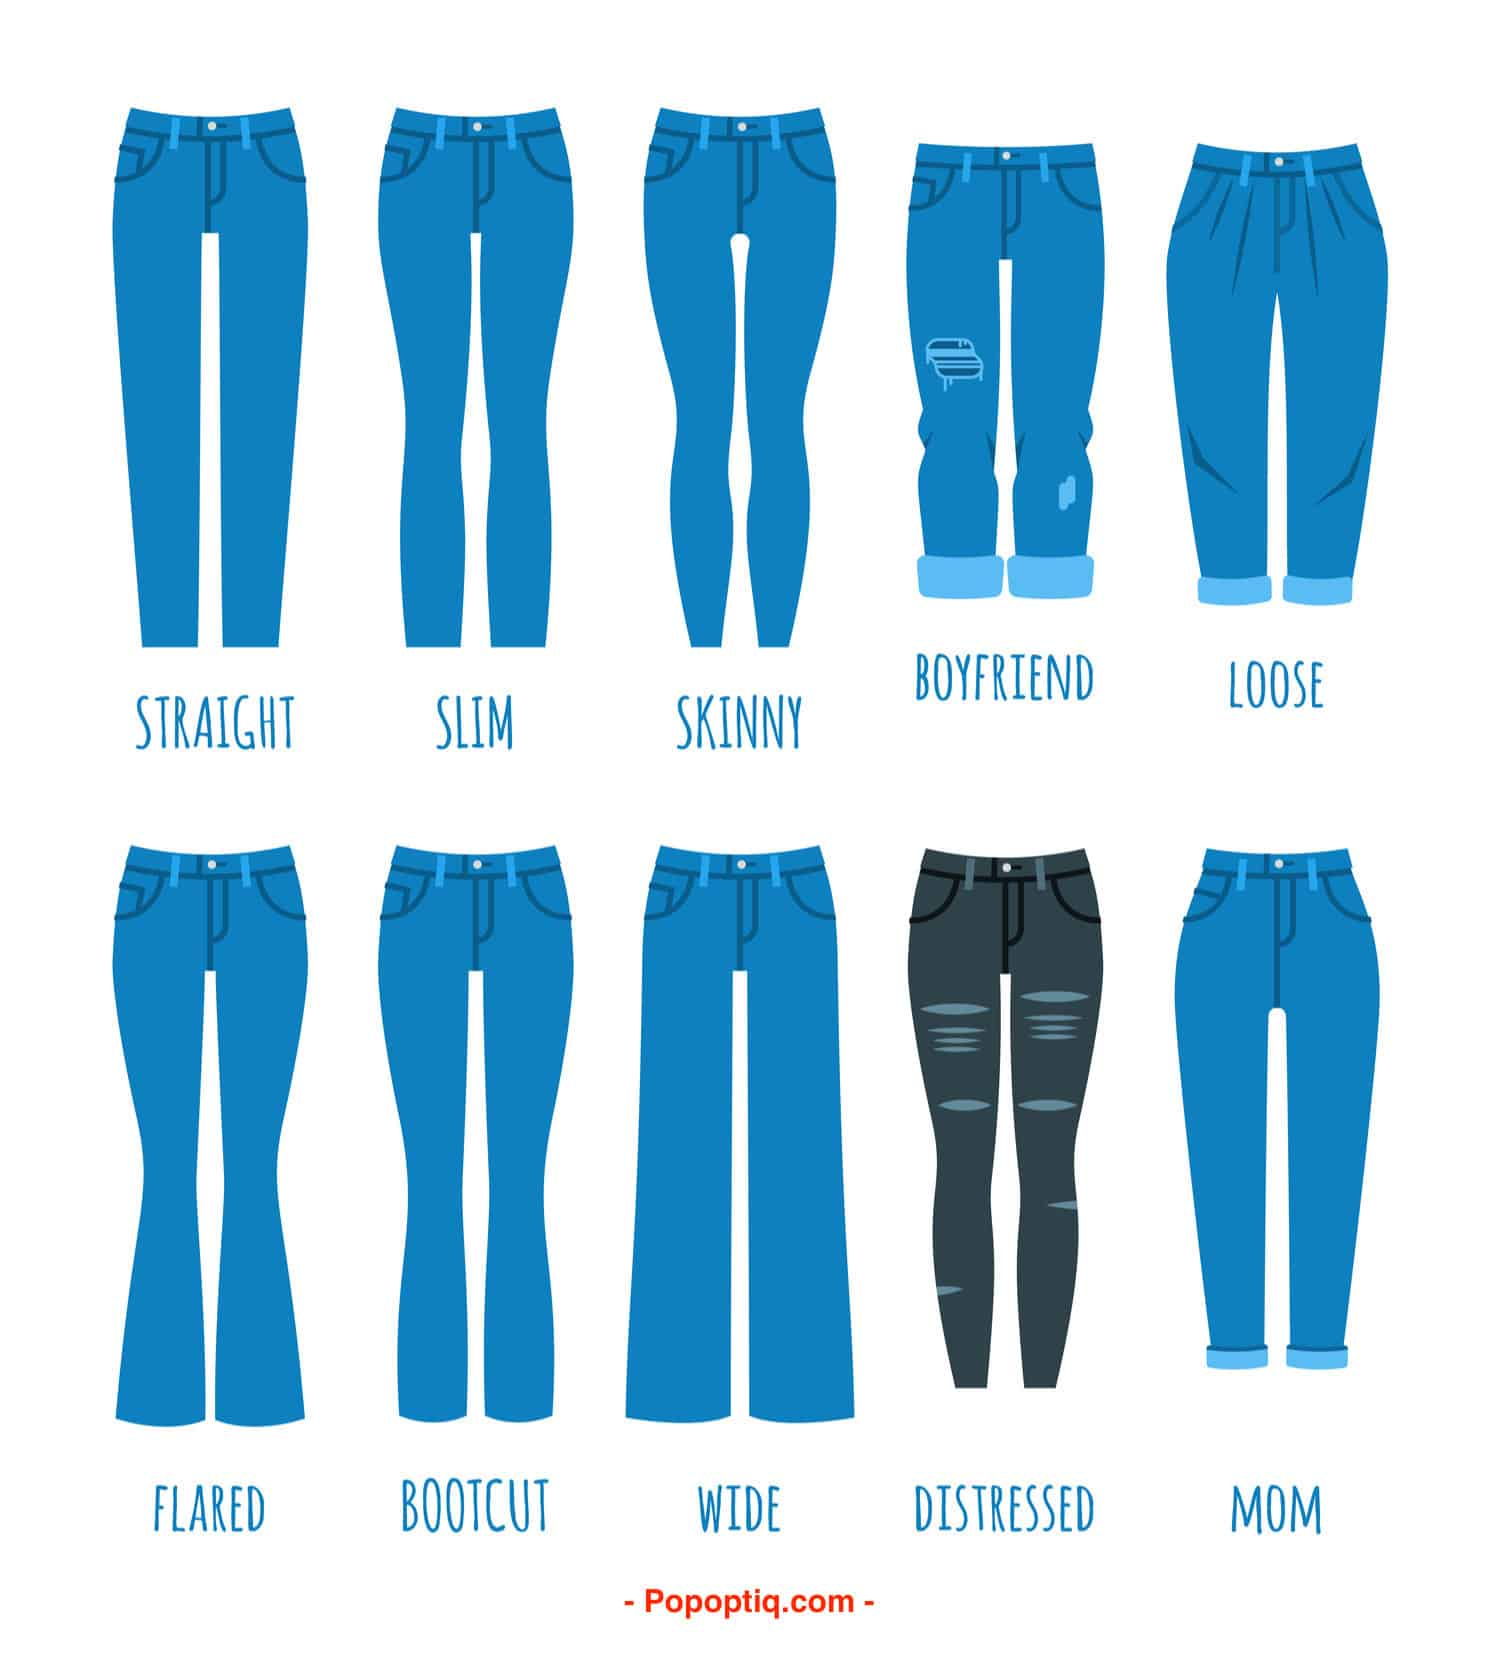 Chart setting out types of womens' jeans